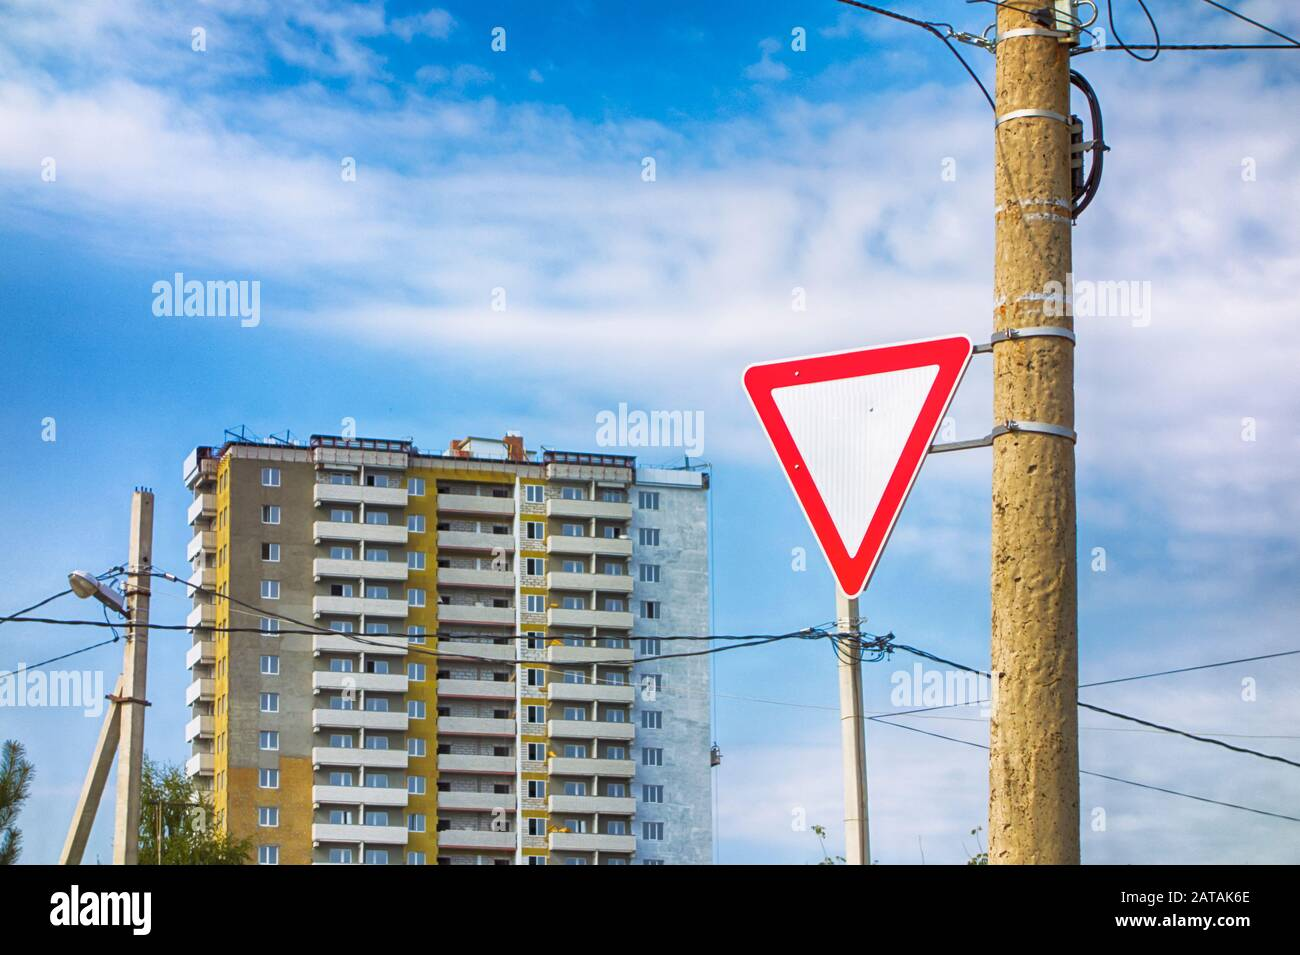 Give way road sign on pillar against multi-storey building and cloudy sky. Stock Photo